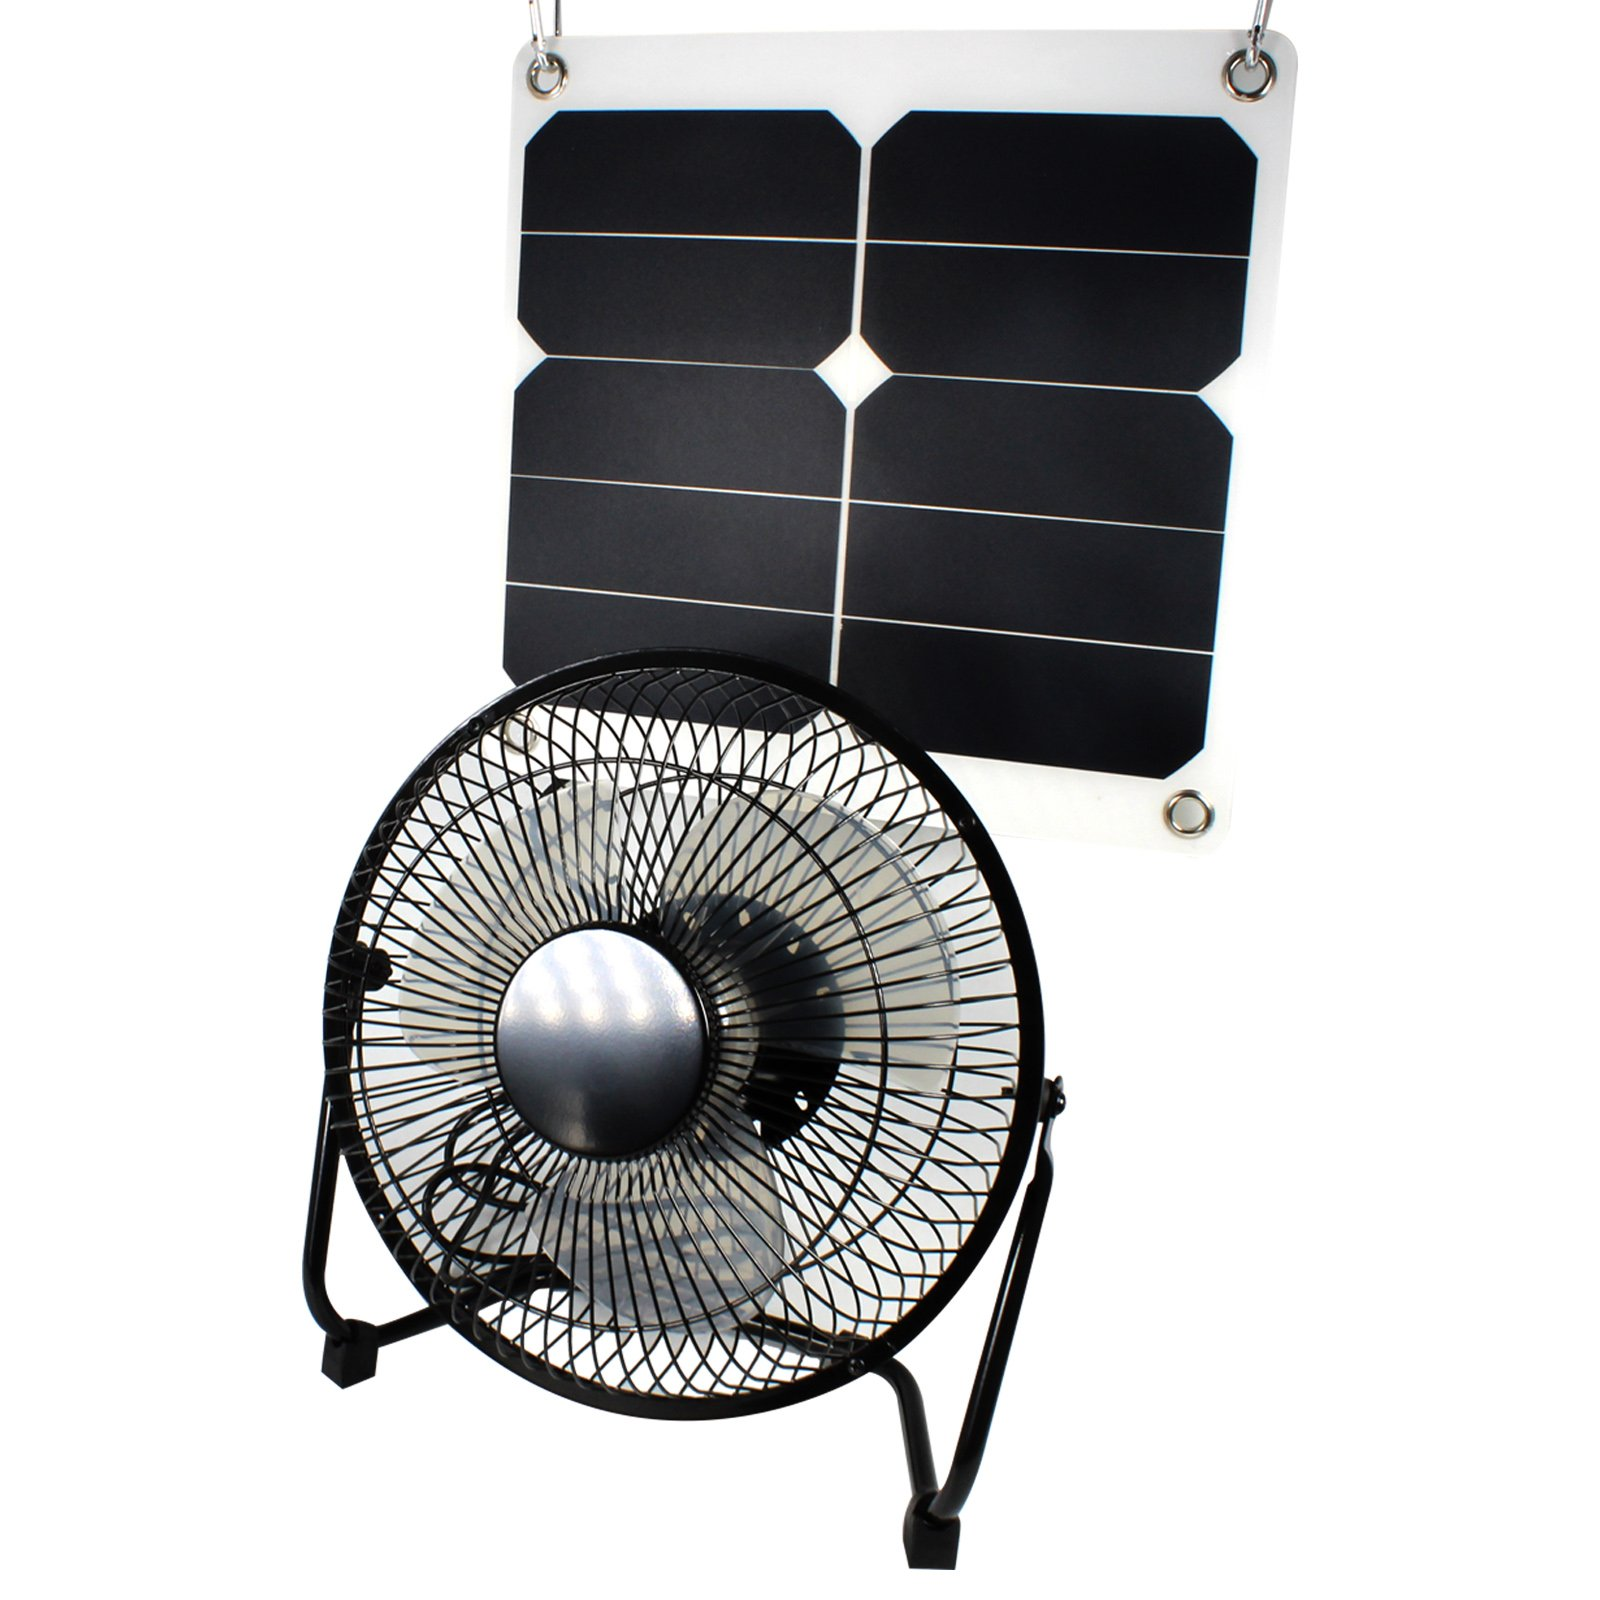 GOODSOZ 10W Solar Panel Fan Outdoor for Home Chicken House RV Car Gazebo Ventilation System by GOODSOZ